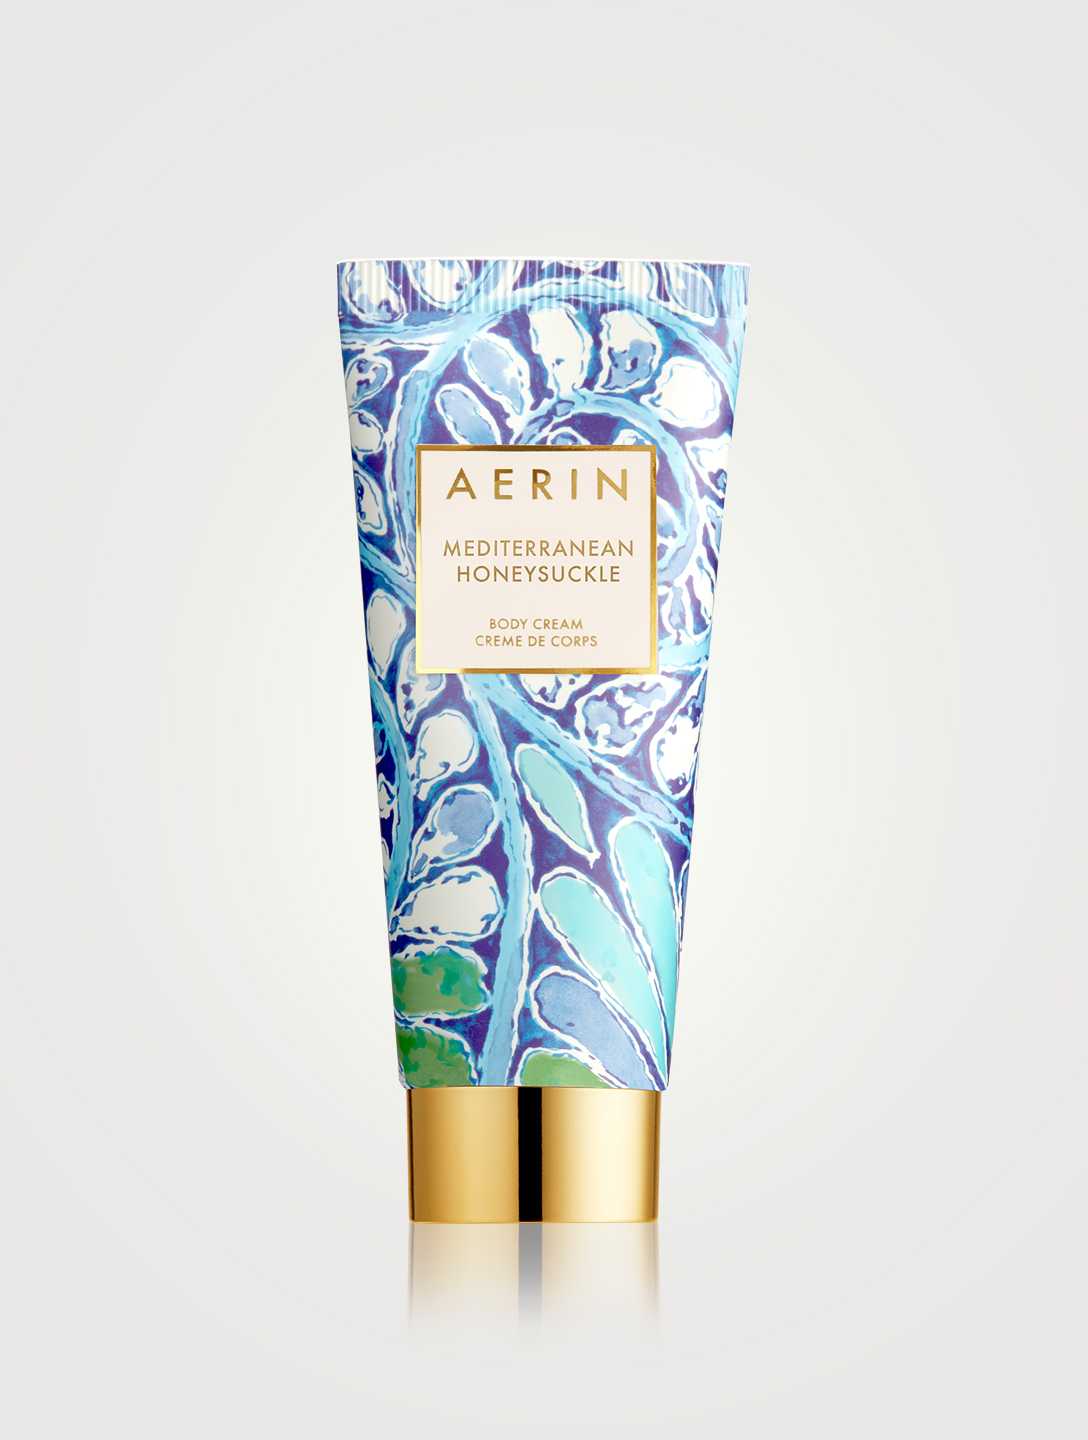 AERIN Mediterranean Honeysuckle Body Cream Beauty